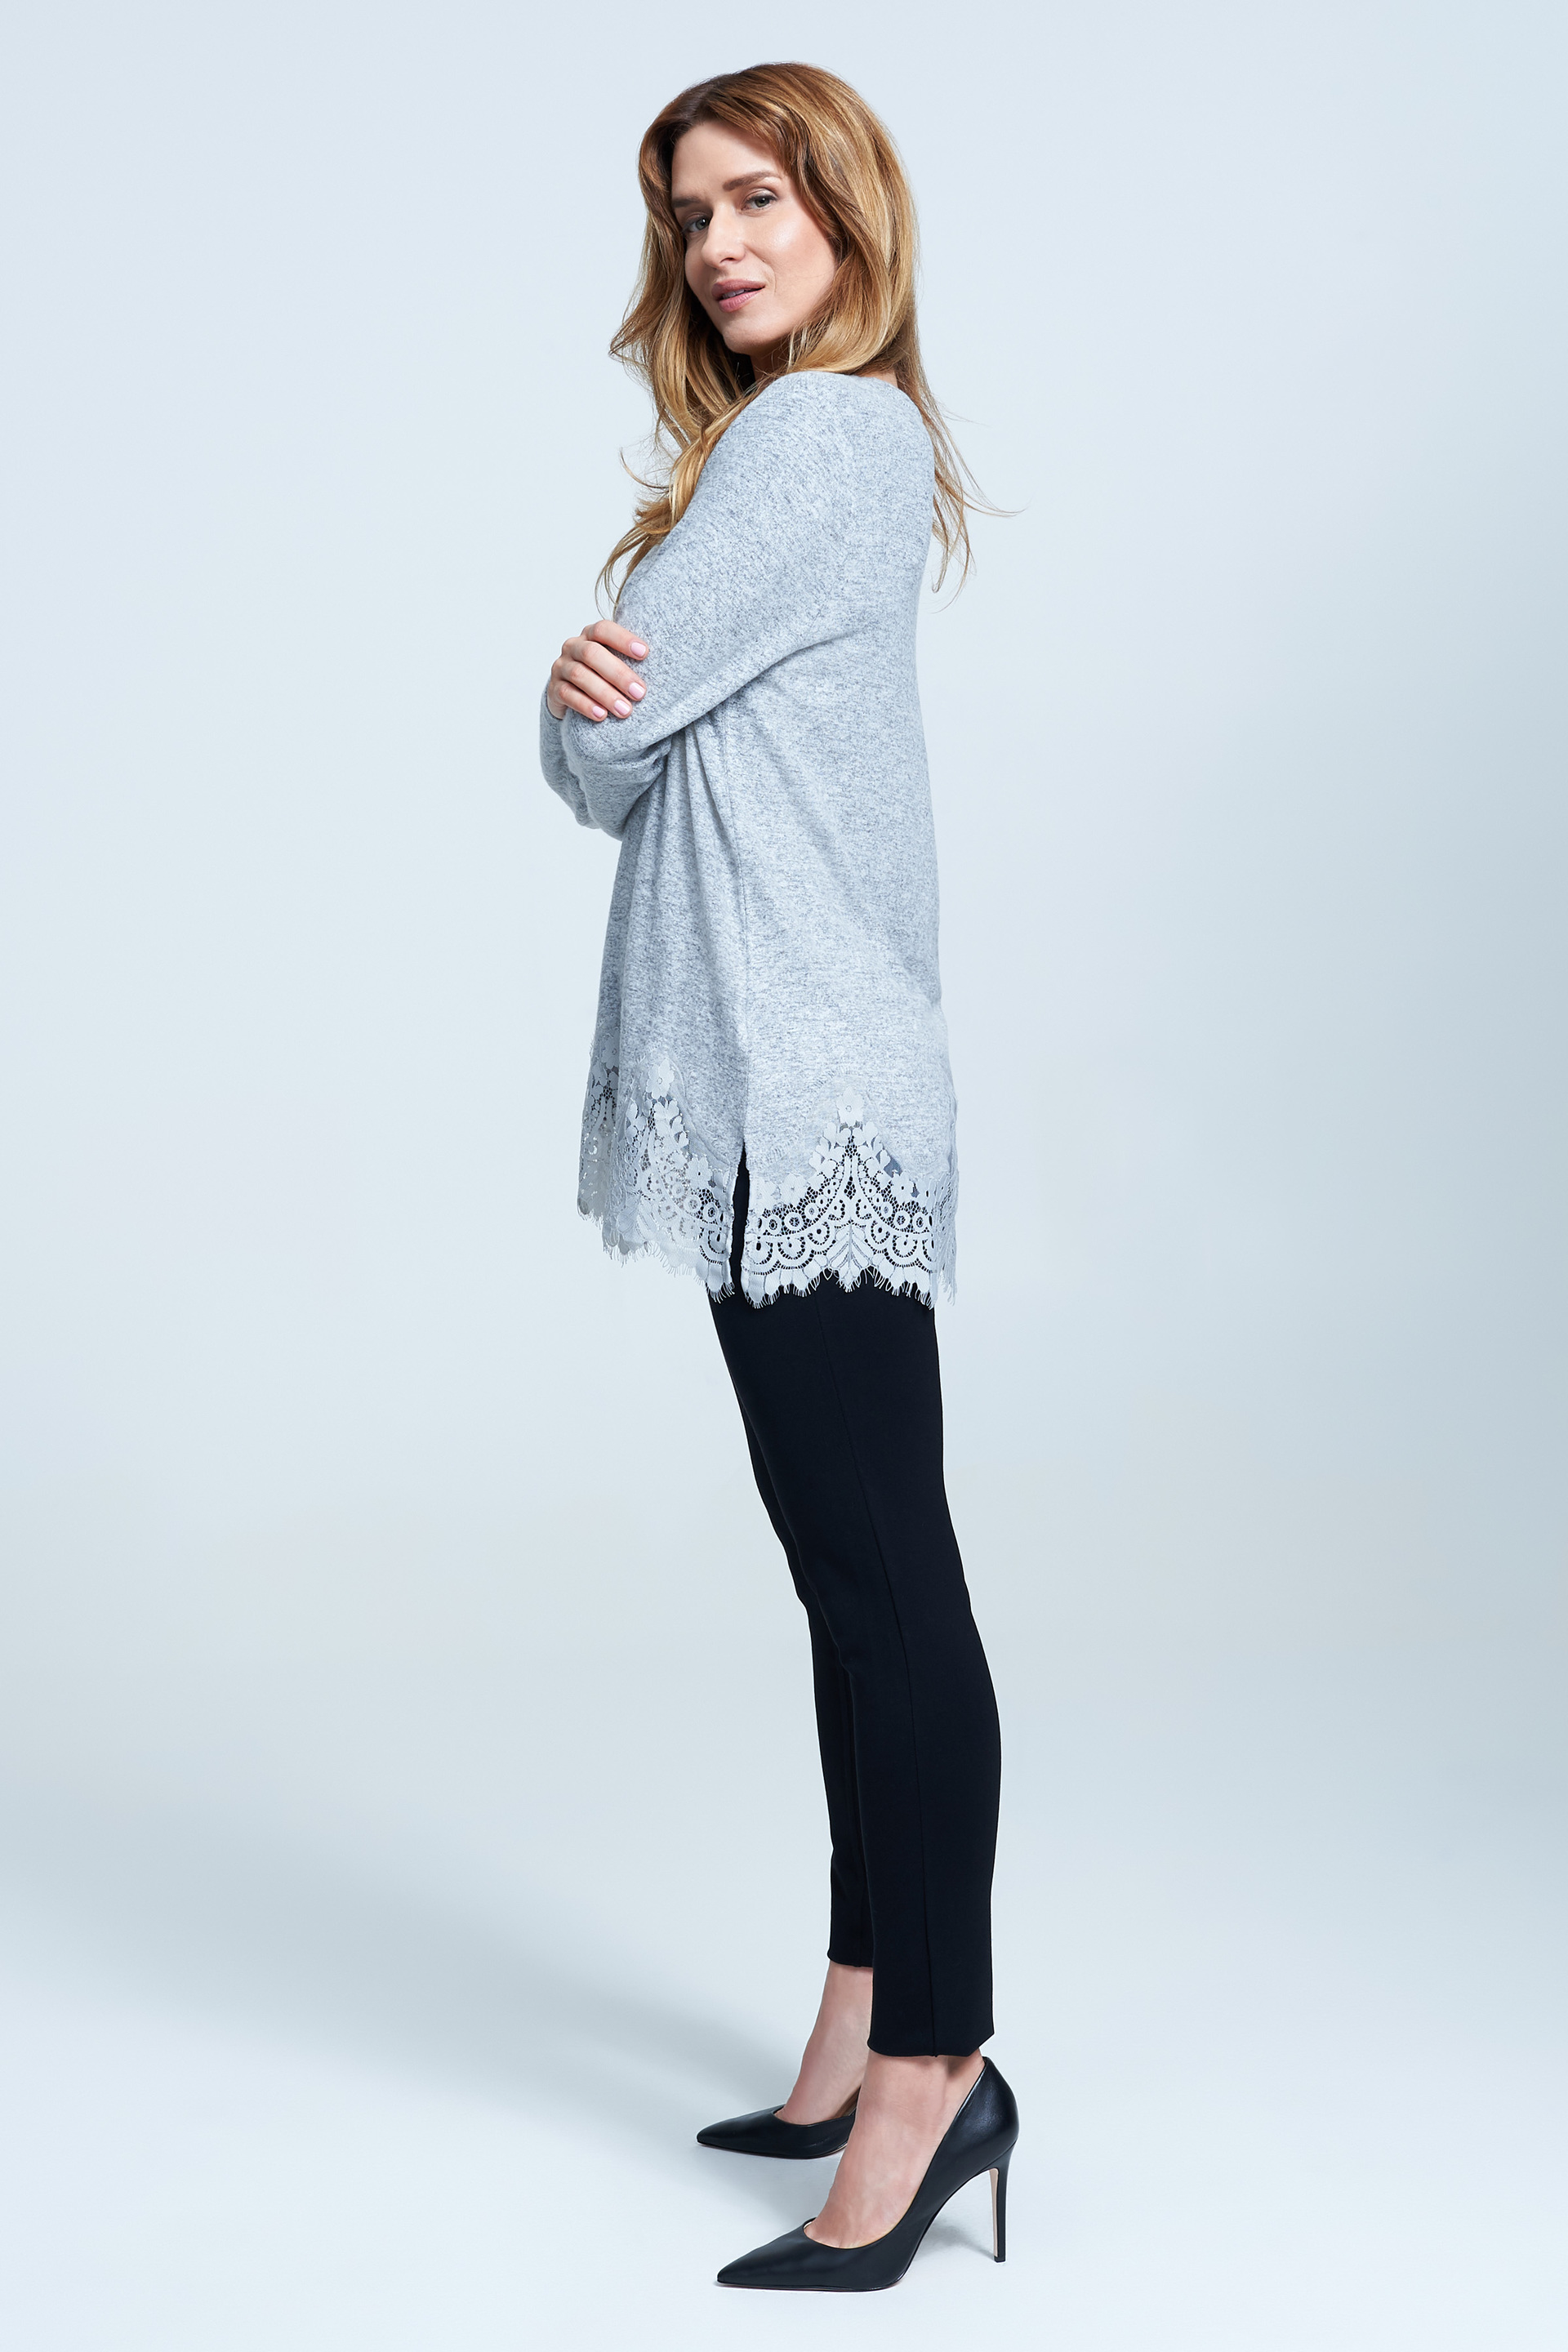 Seven7 Jeans Knit Top with Lace Trim <p>Scalloped lace sweeps along the hem of this thigh-skimming knit top featuring three-quarter sleeves and split sides.</p>